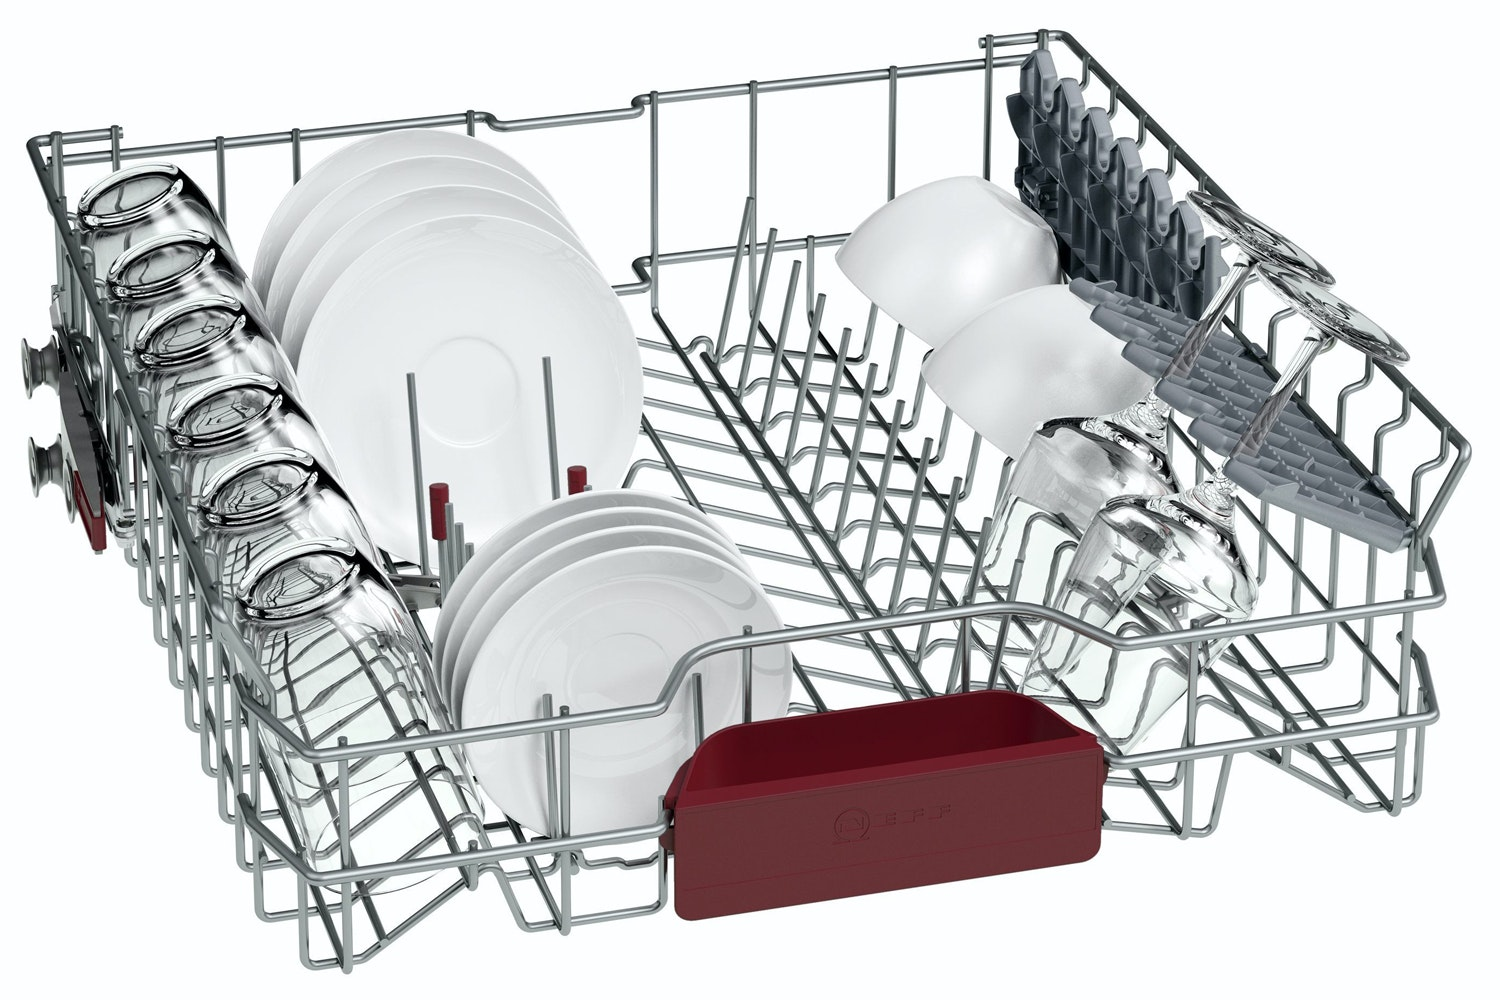 Neff Fully Integrated Dishwasher   13 Place   S513K60X1G